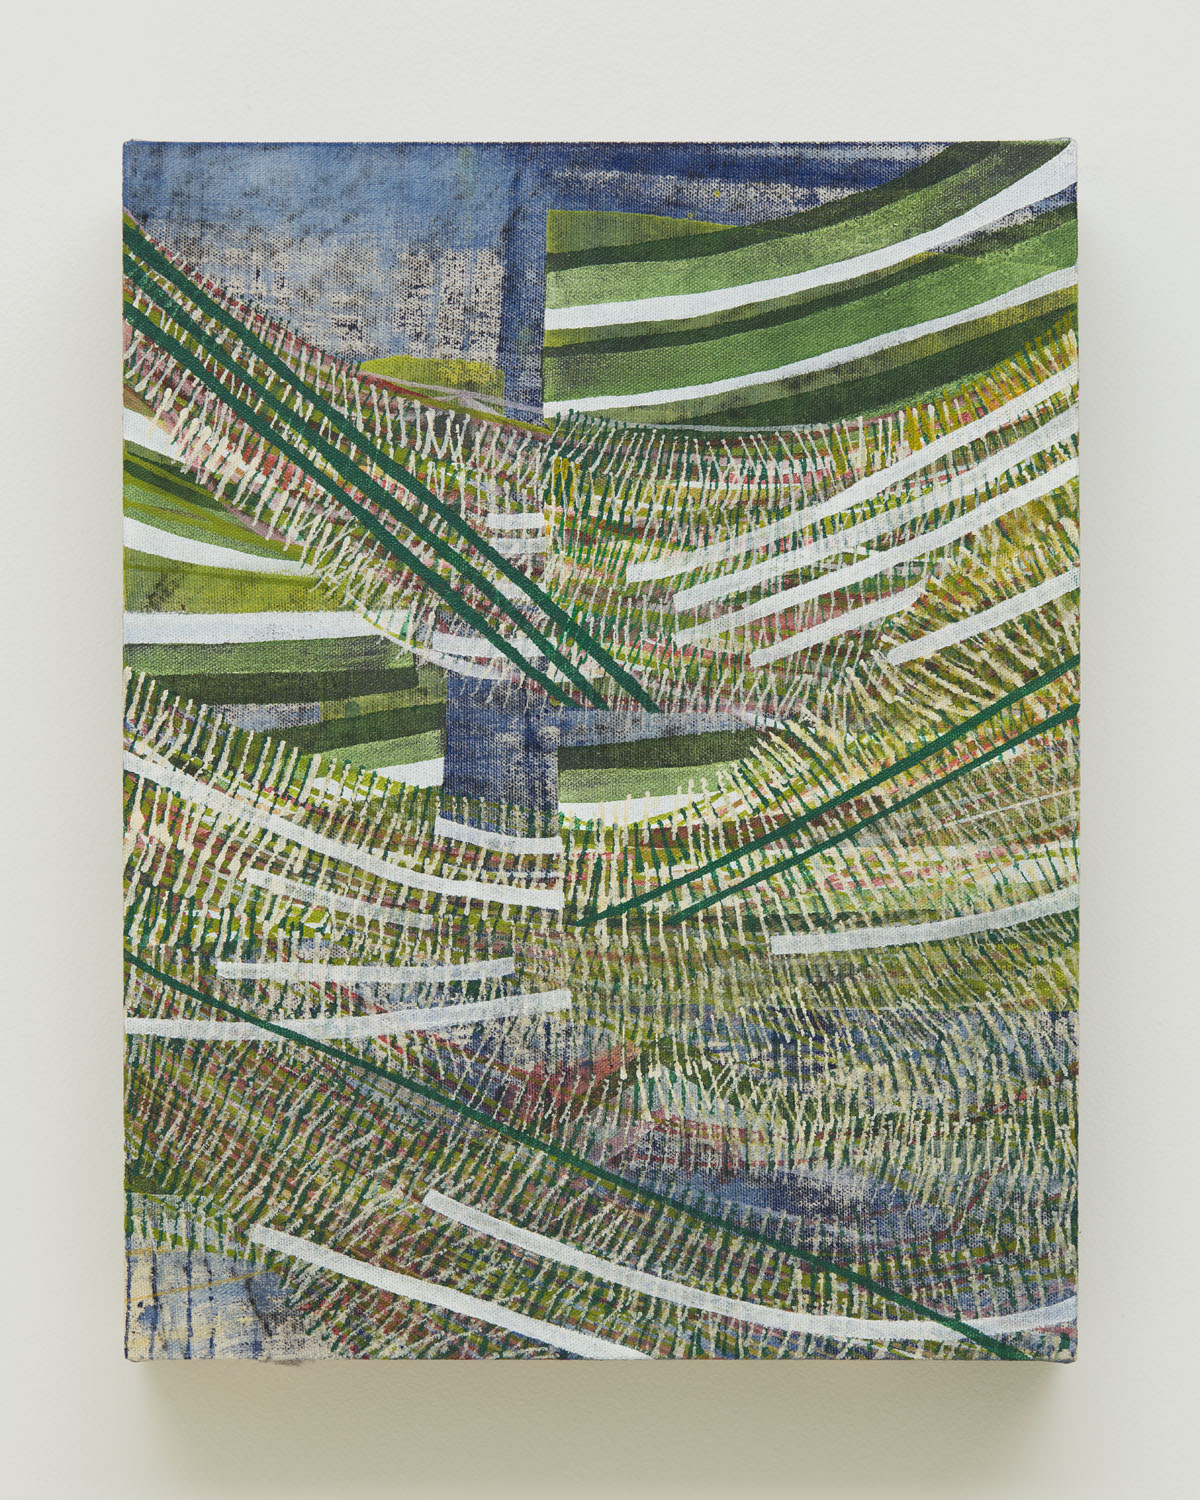 Split Second, 2017, by Alyse Rosner, is an abstract, green and blue acrylic and graphite linear dynamically composed landscape painting on canvas.